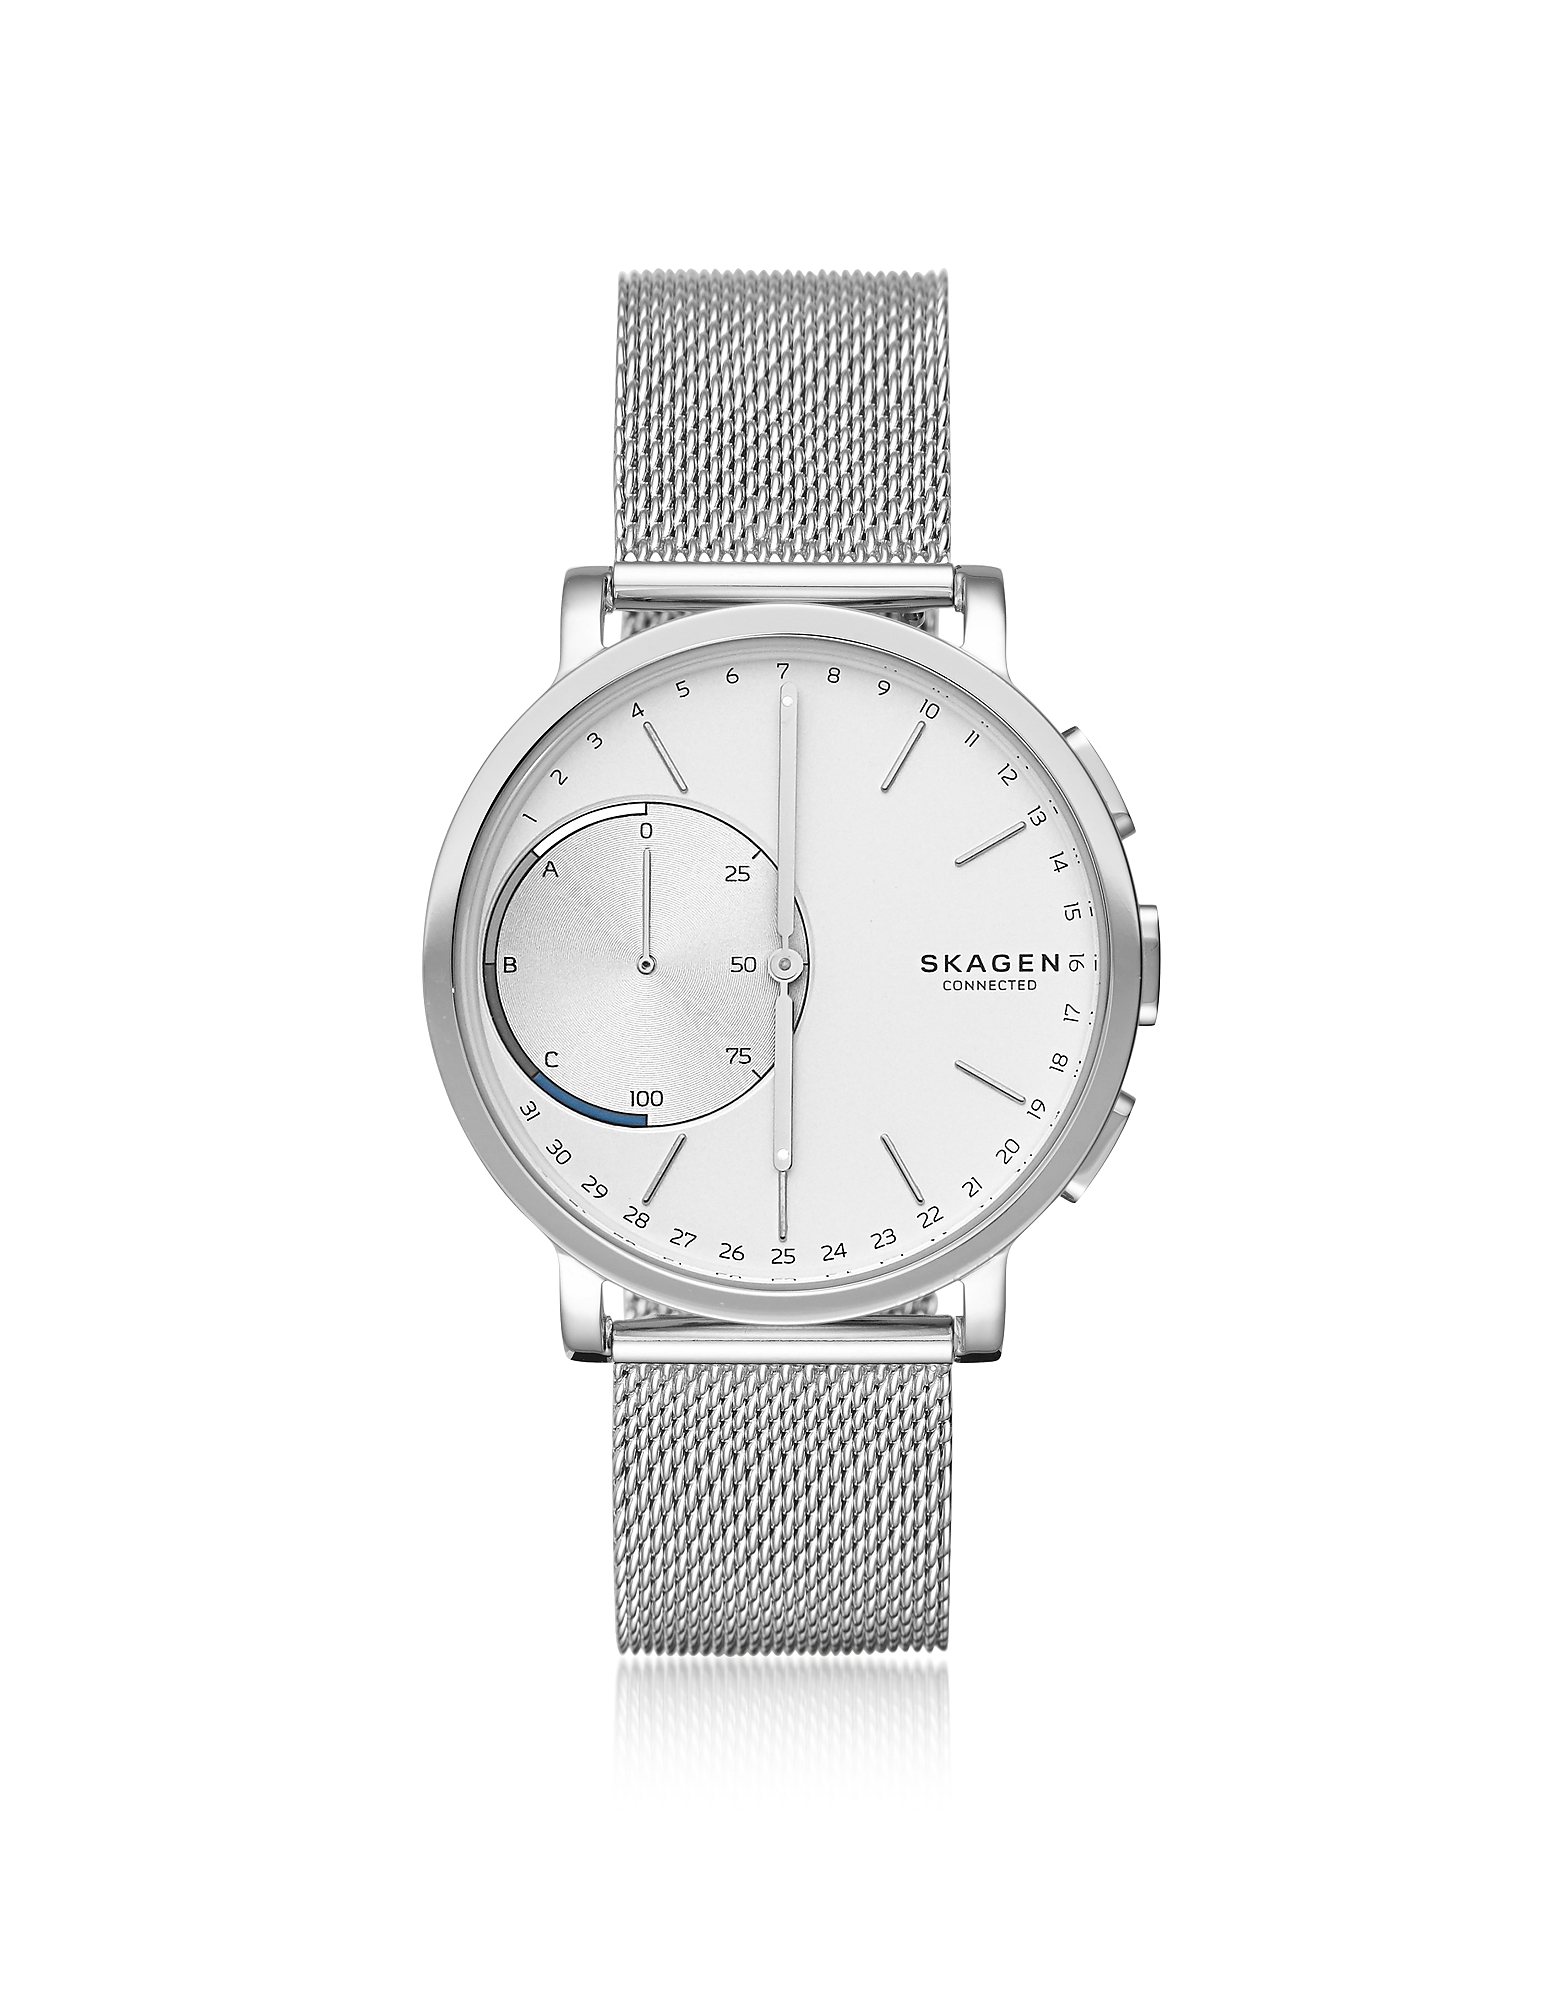 Skagen Men's Watches, Hagen Hybrid Steel Mesh Men's Smartwatch